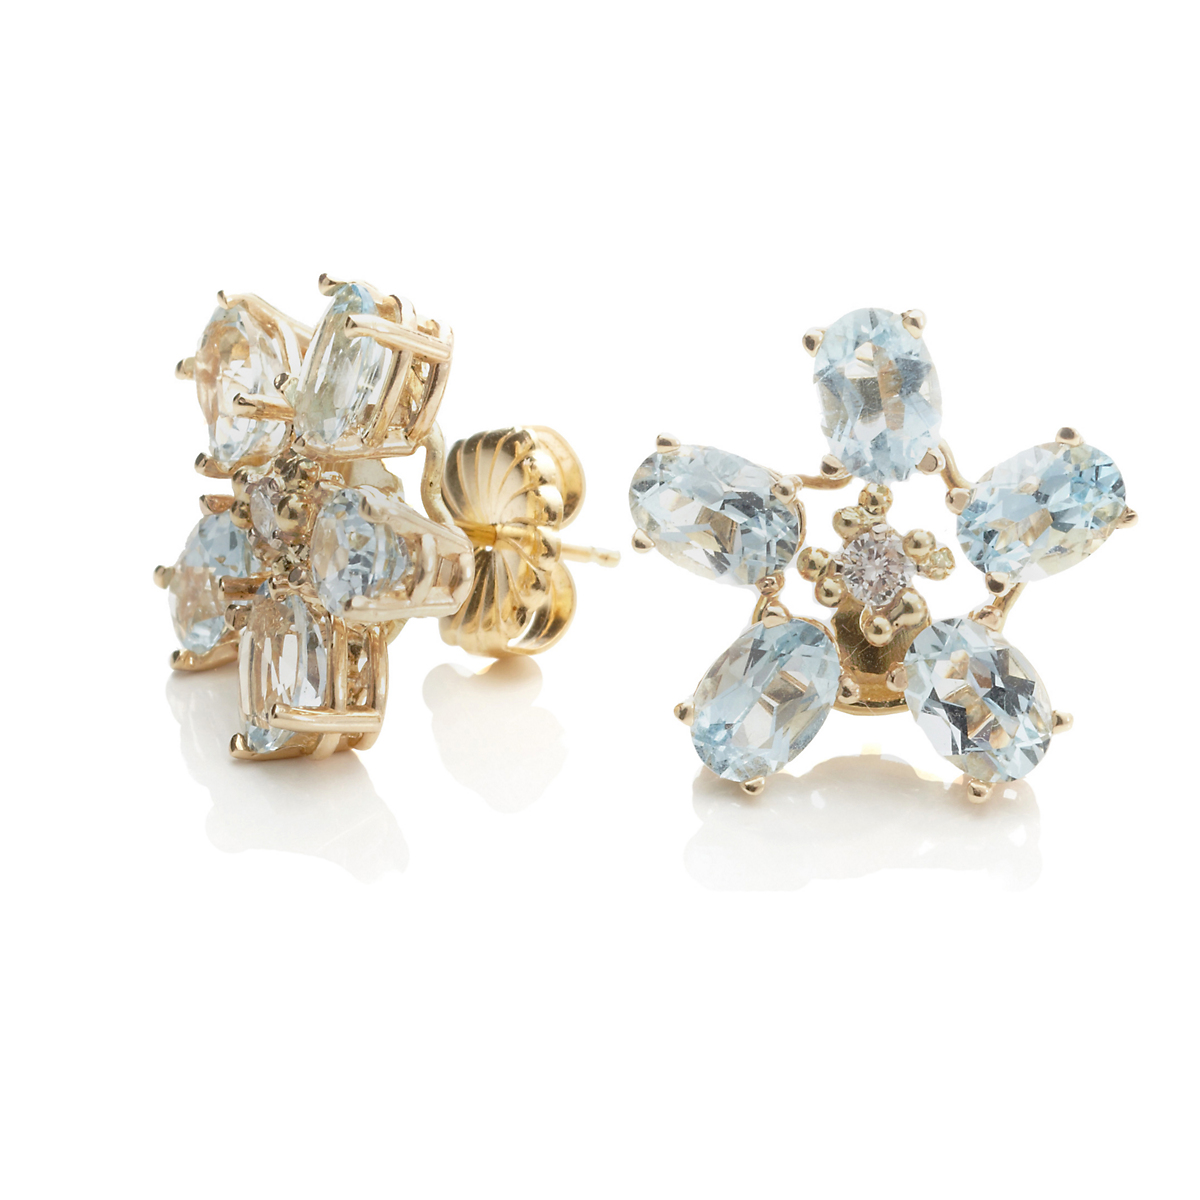 Russell Trusso Aquamarine & Diamond Flower Earrings